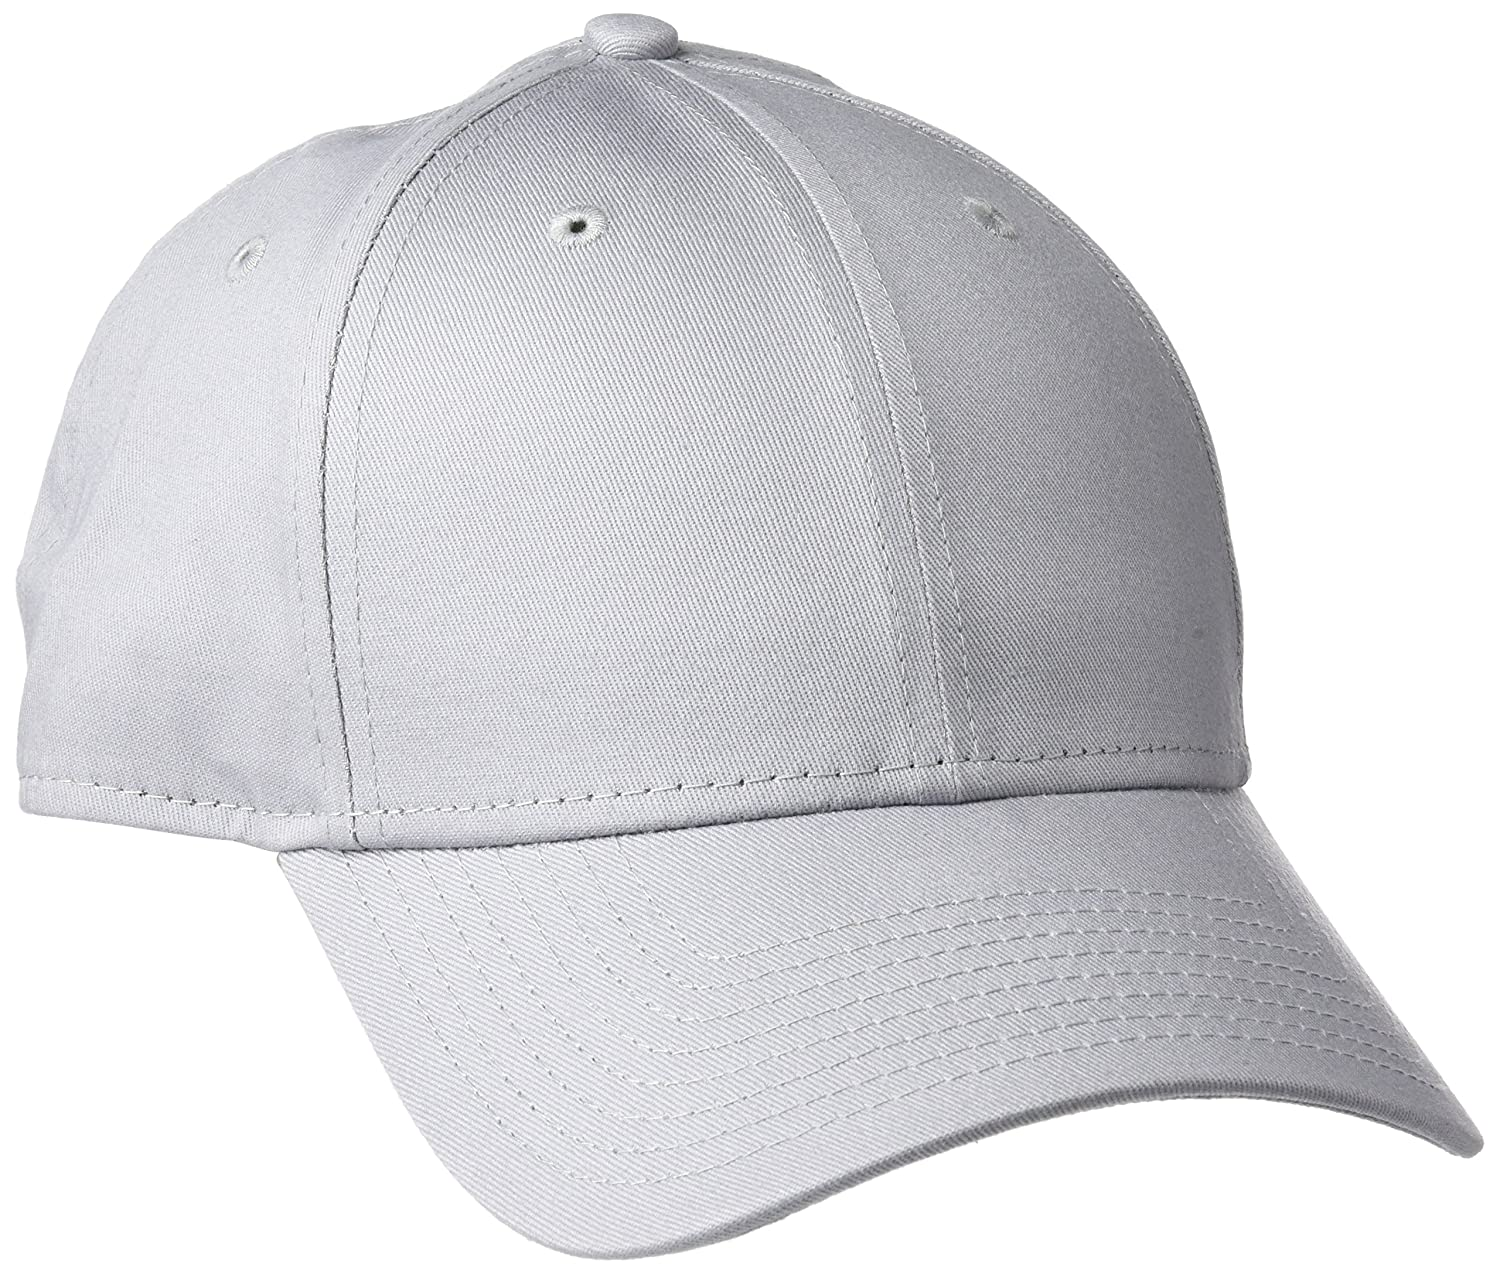 050fbb1a8de20 New Era Women s Basic 9Forty Cap One Size Grey at Amazon Men s Clothing  store